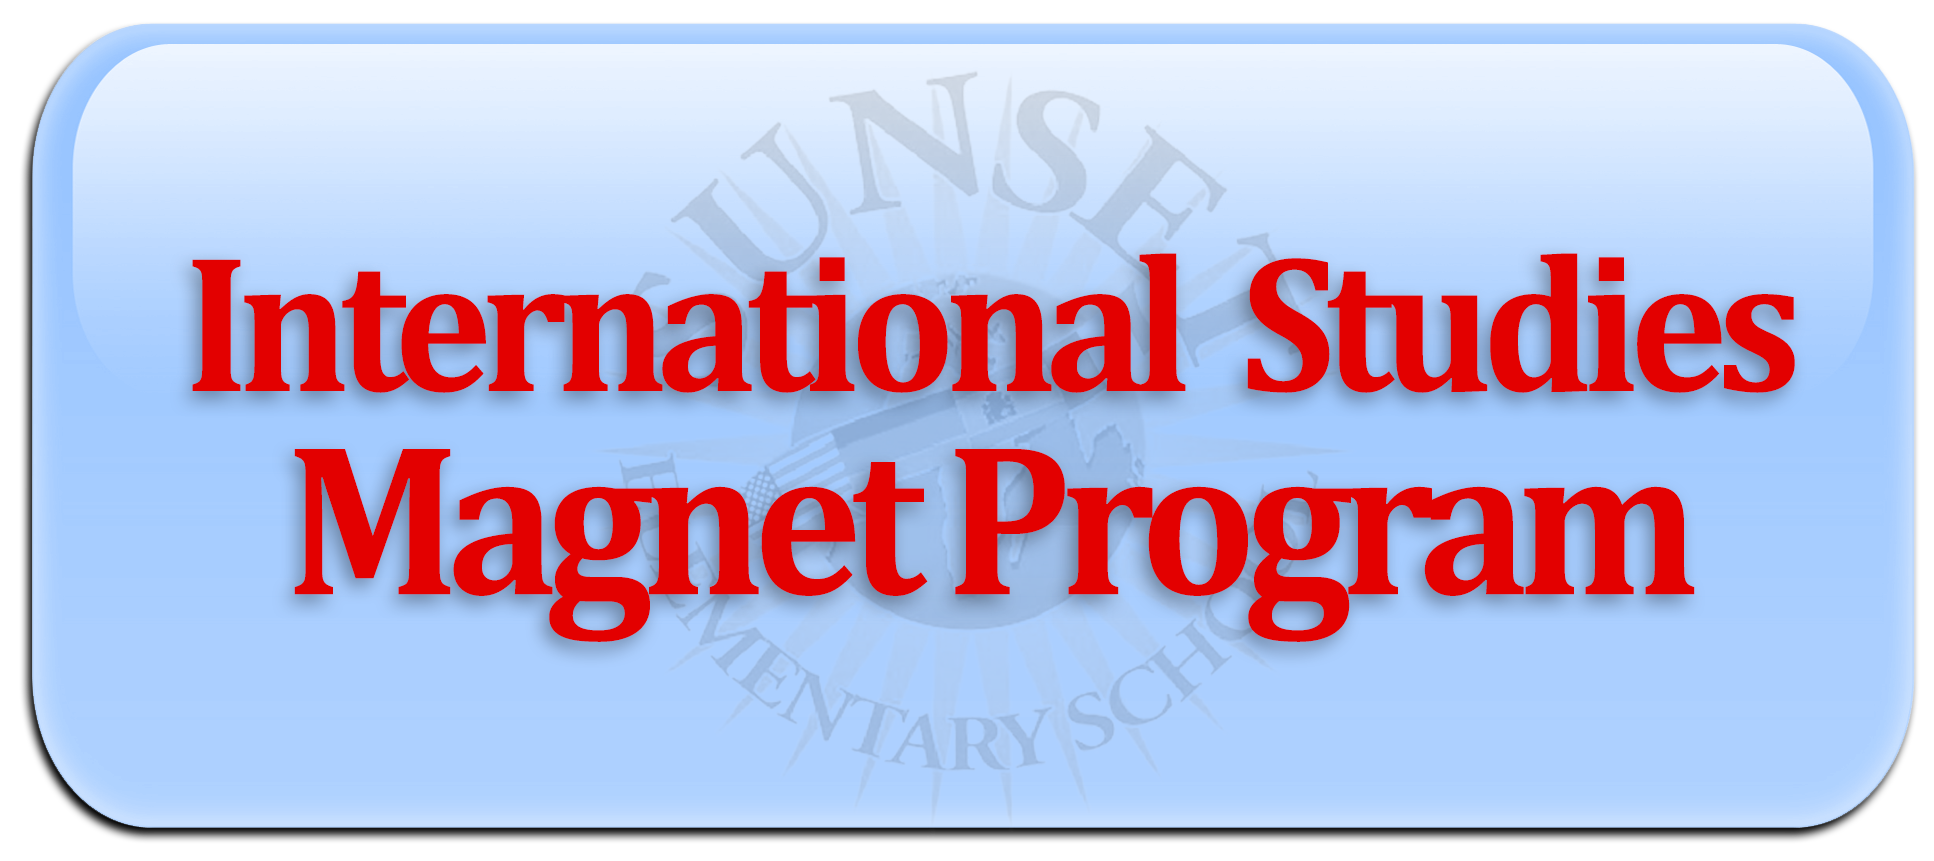 International Studies Magnet Program